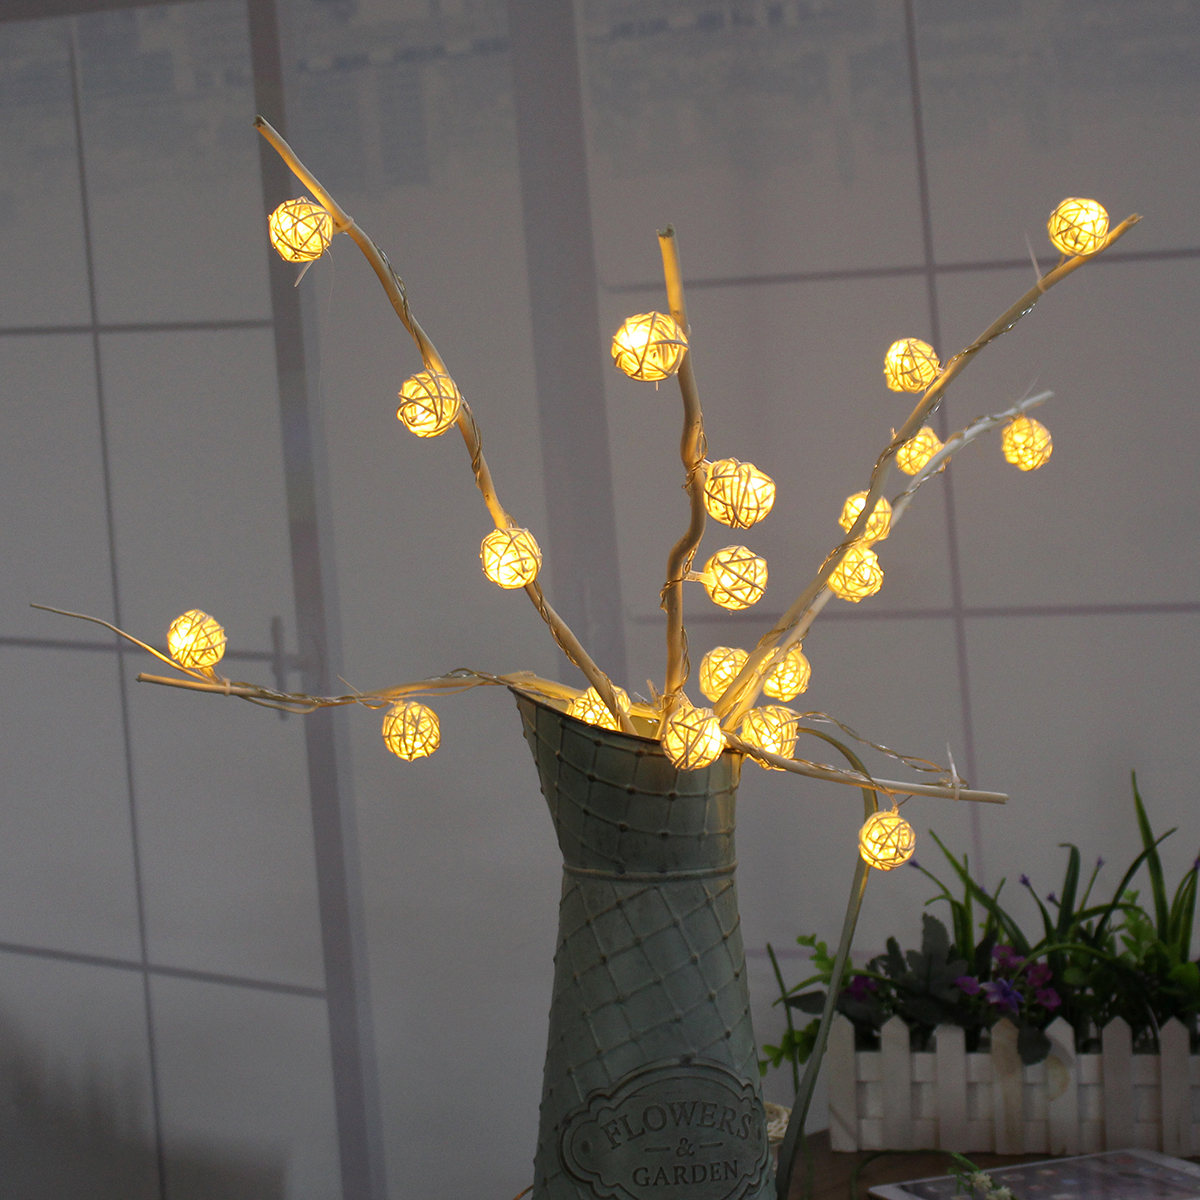 Aliexpress buy garden twig lights 25 led branch vase table aliexpress buy garden twig lights 25 led branch vase table lights outdoor wedding party home decoration romantic christmas blossom tree lamp from aloadofball Gallery